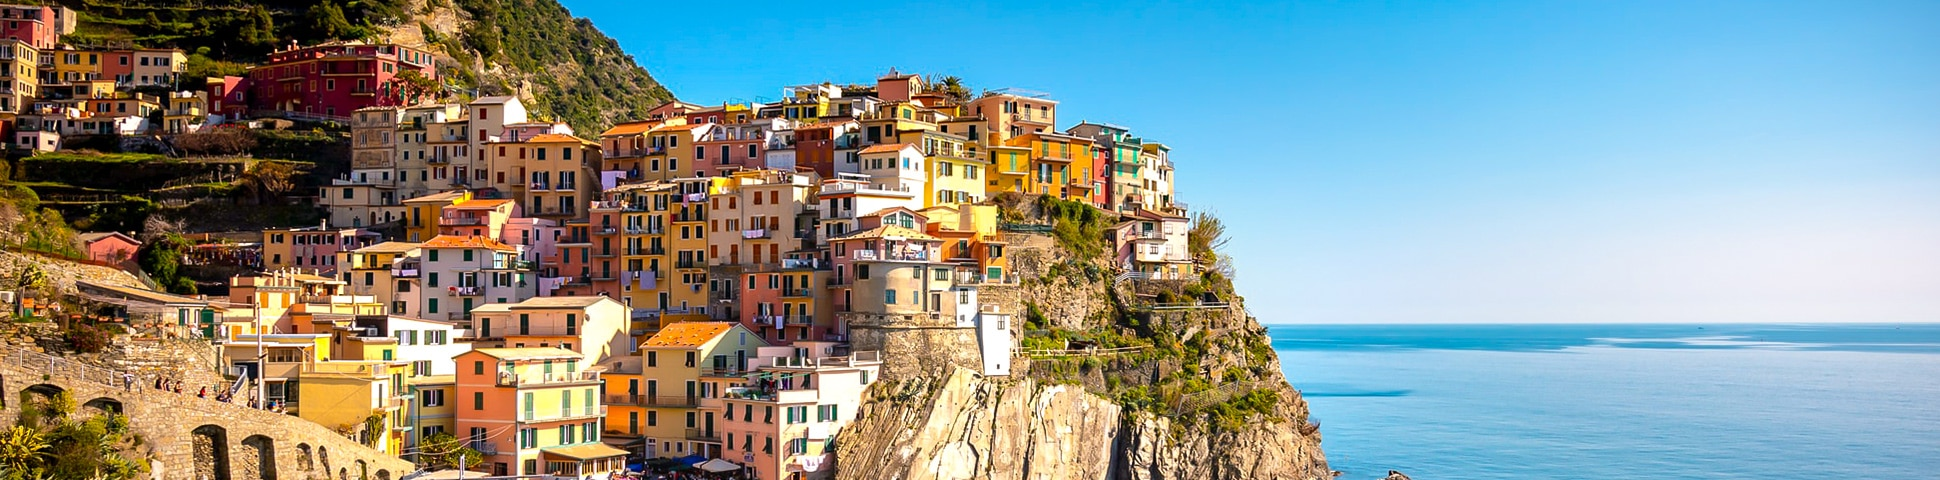 Colorful houses in small Italian village along Cinque Terre, Liguria